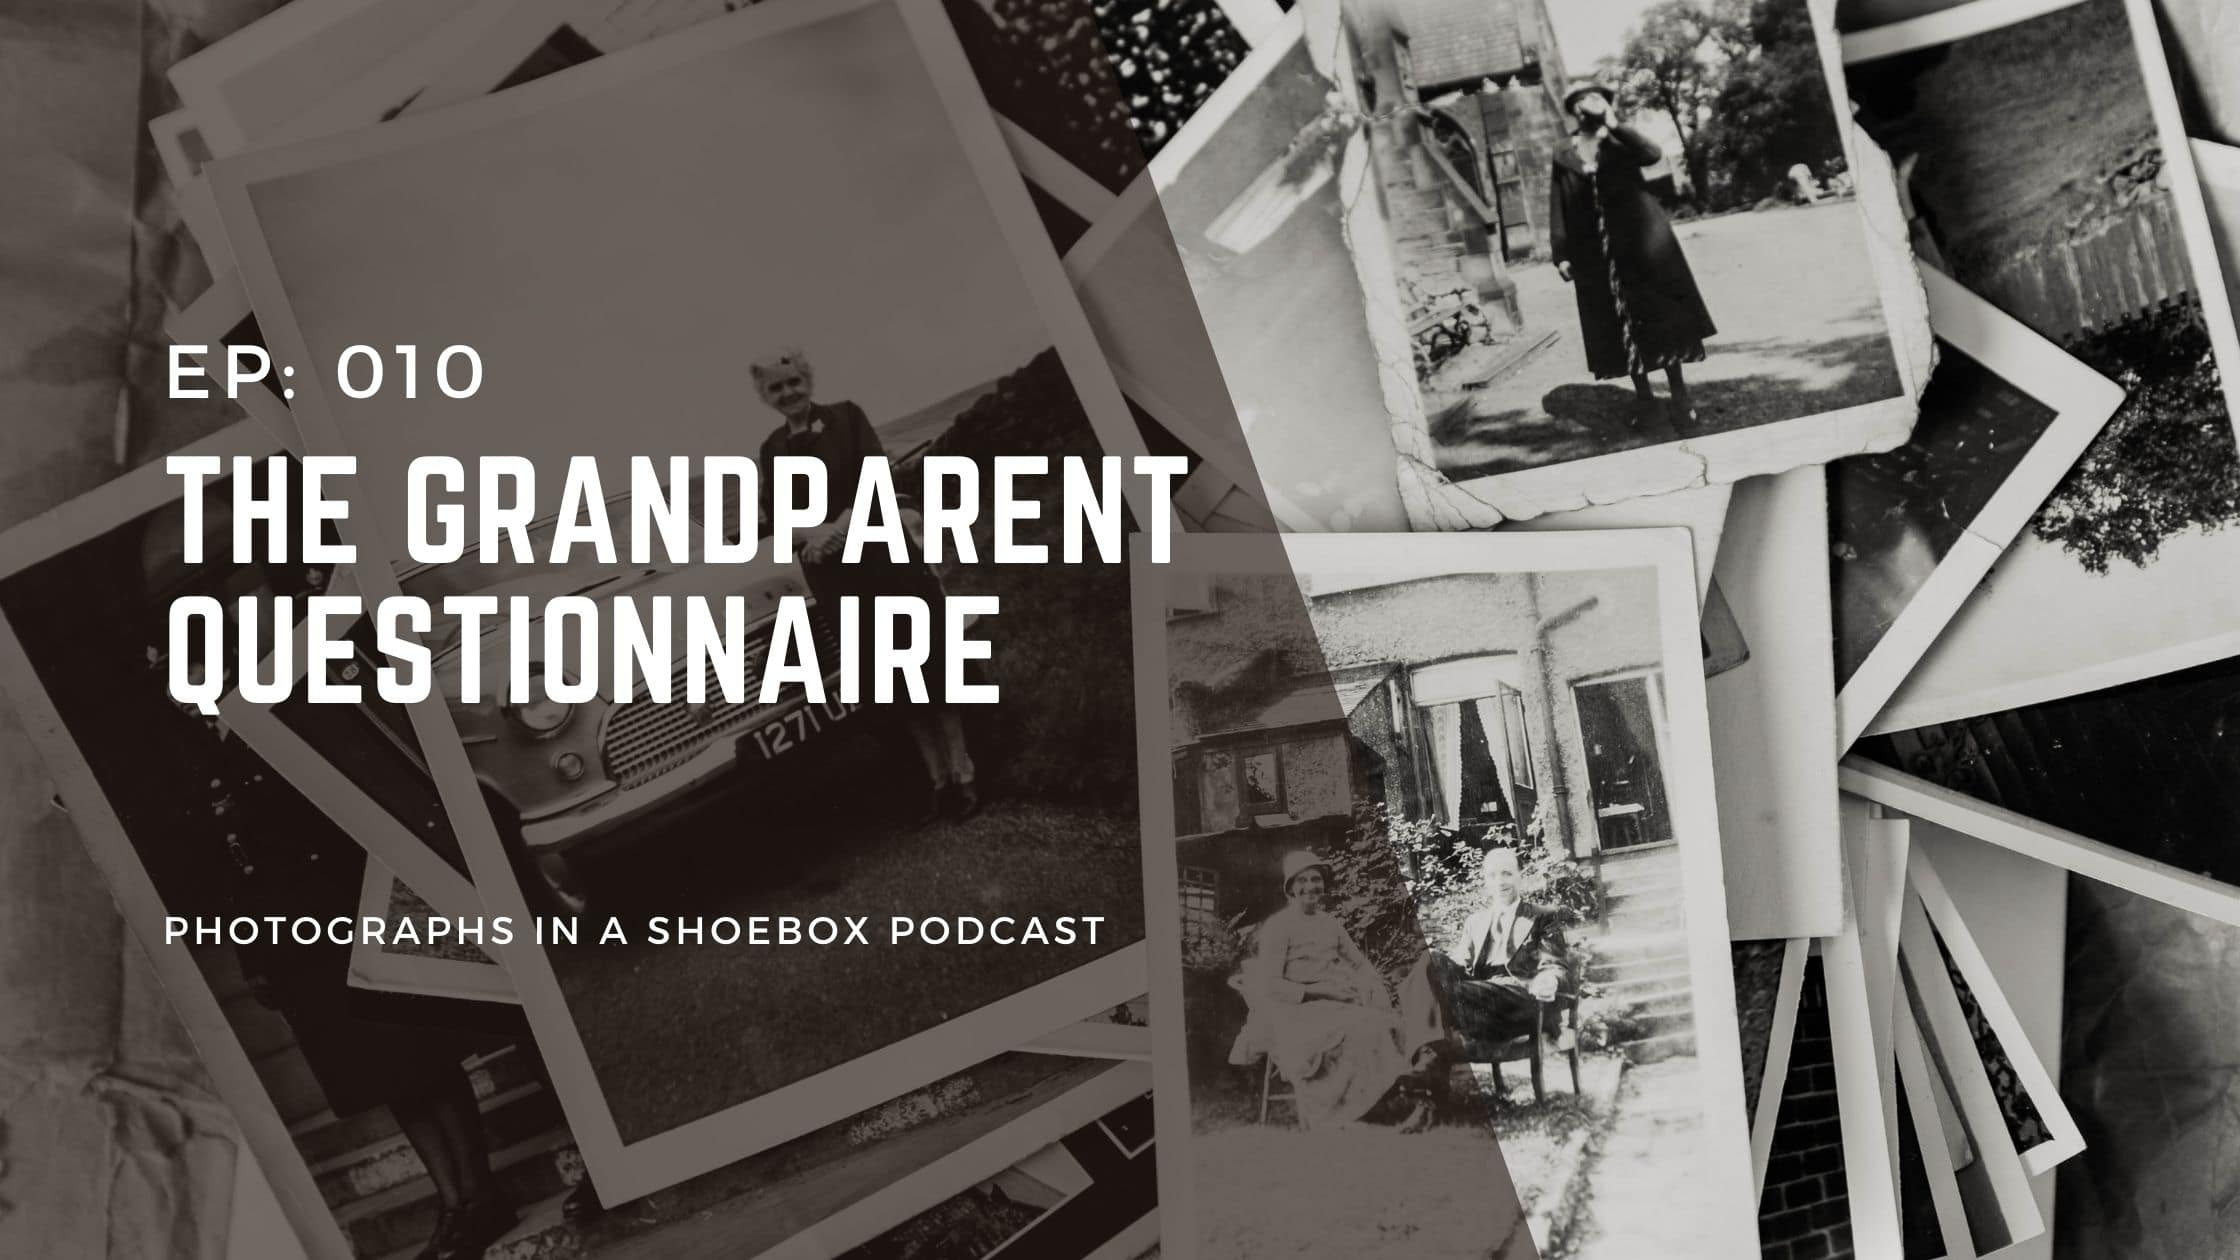 Podcast titile image for ep010 the grandparent questionnaire